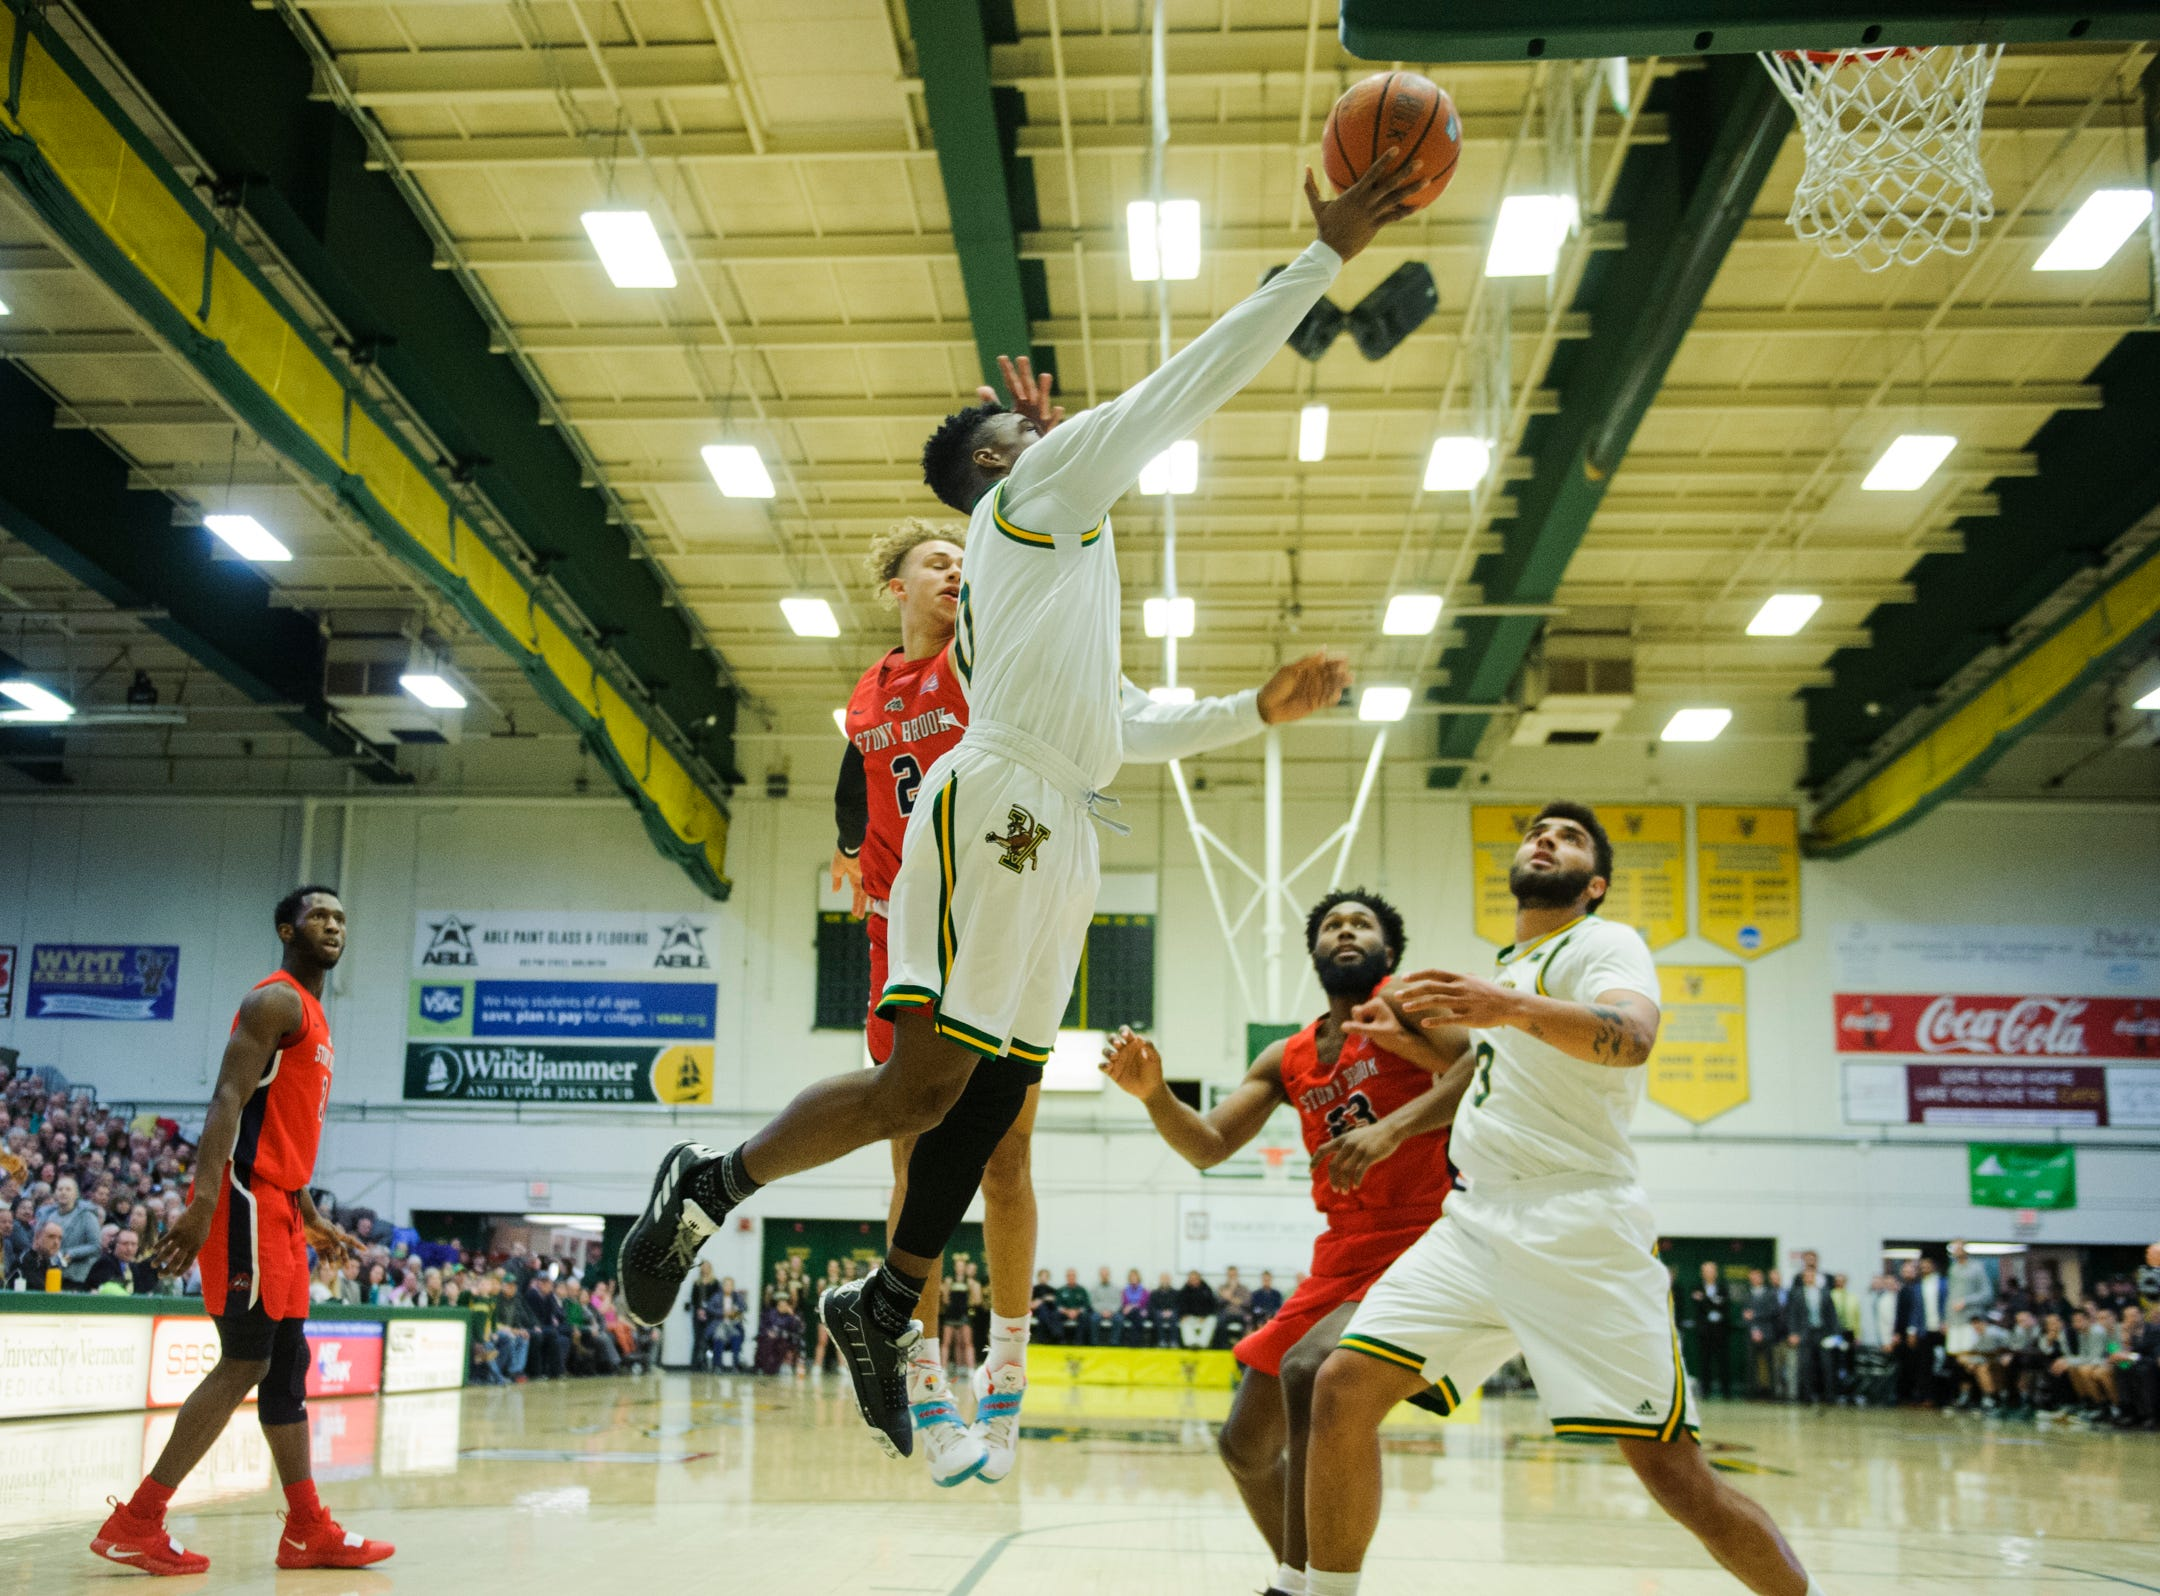 Vermont guard Stef Smith (0) leaps for a lay up during the men's basketball game between the Stony Brook Seawolves and the Vermont Catamounts at Patrick Gym on Saturday night March 2, 2019 in Burlington, Vermont.